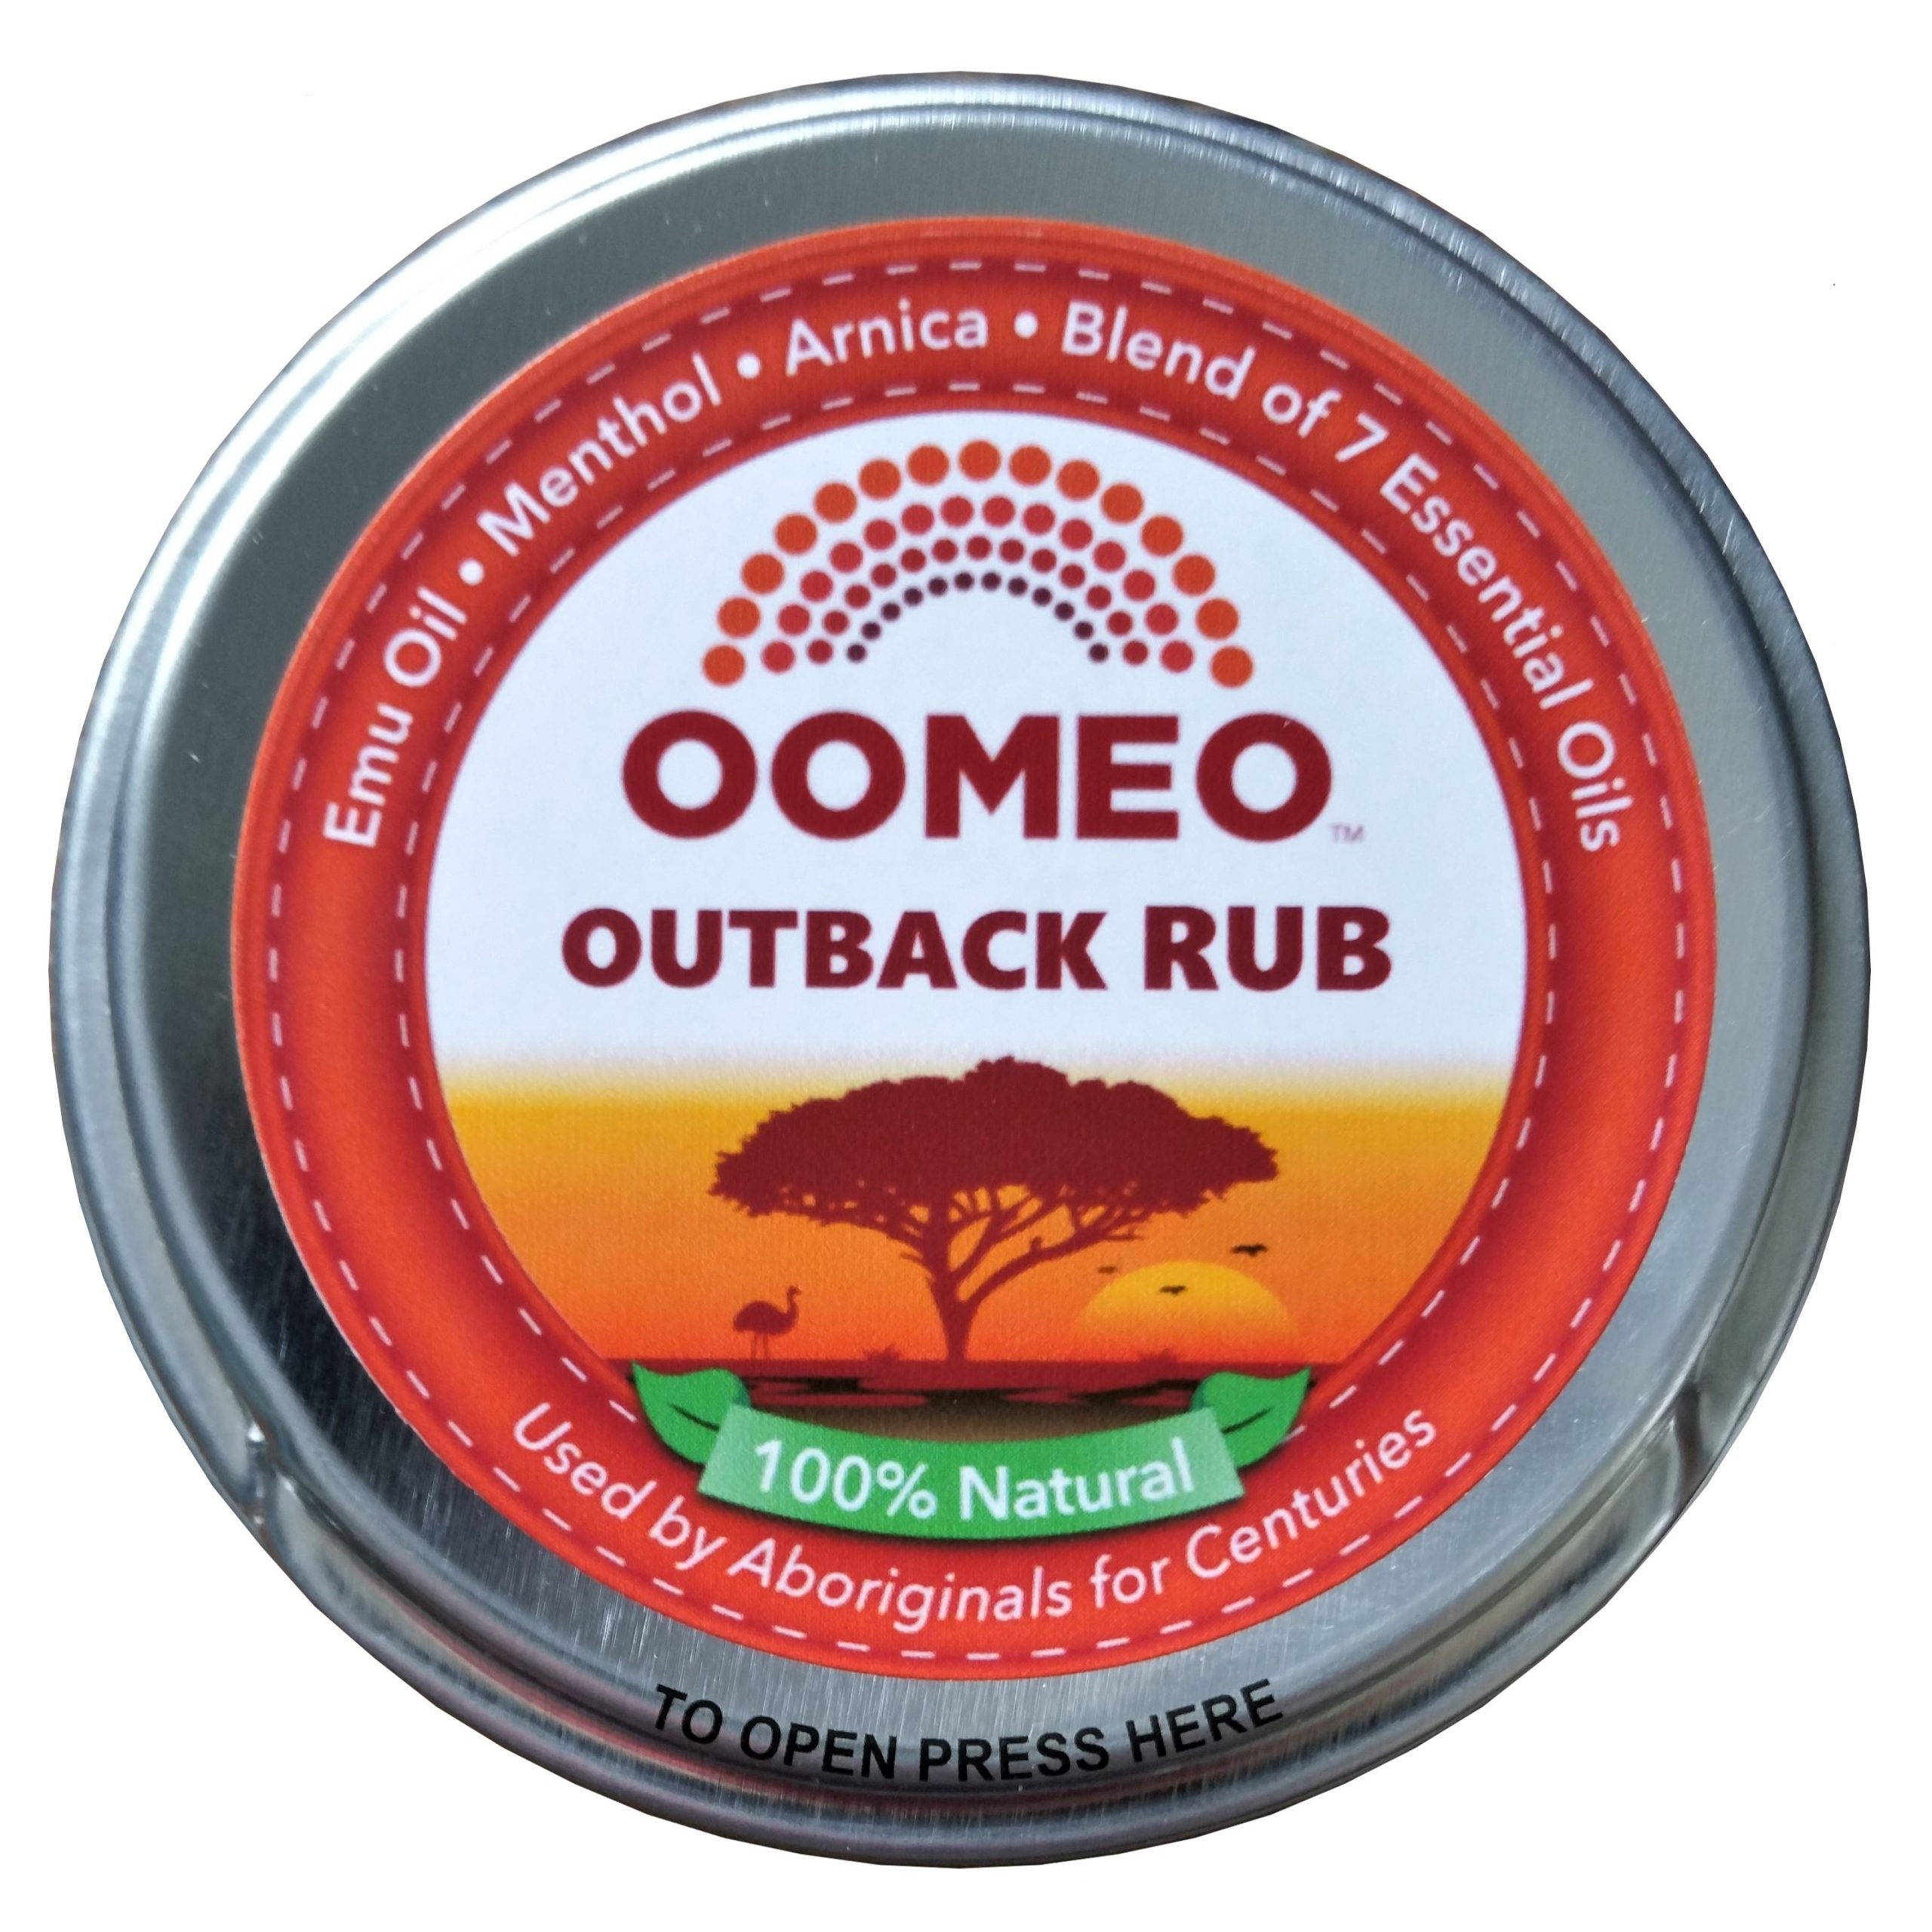 50 ml outback rub